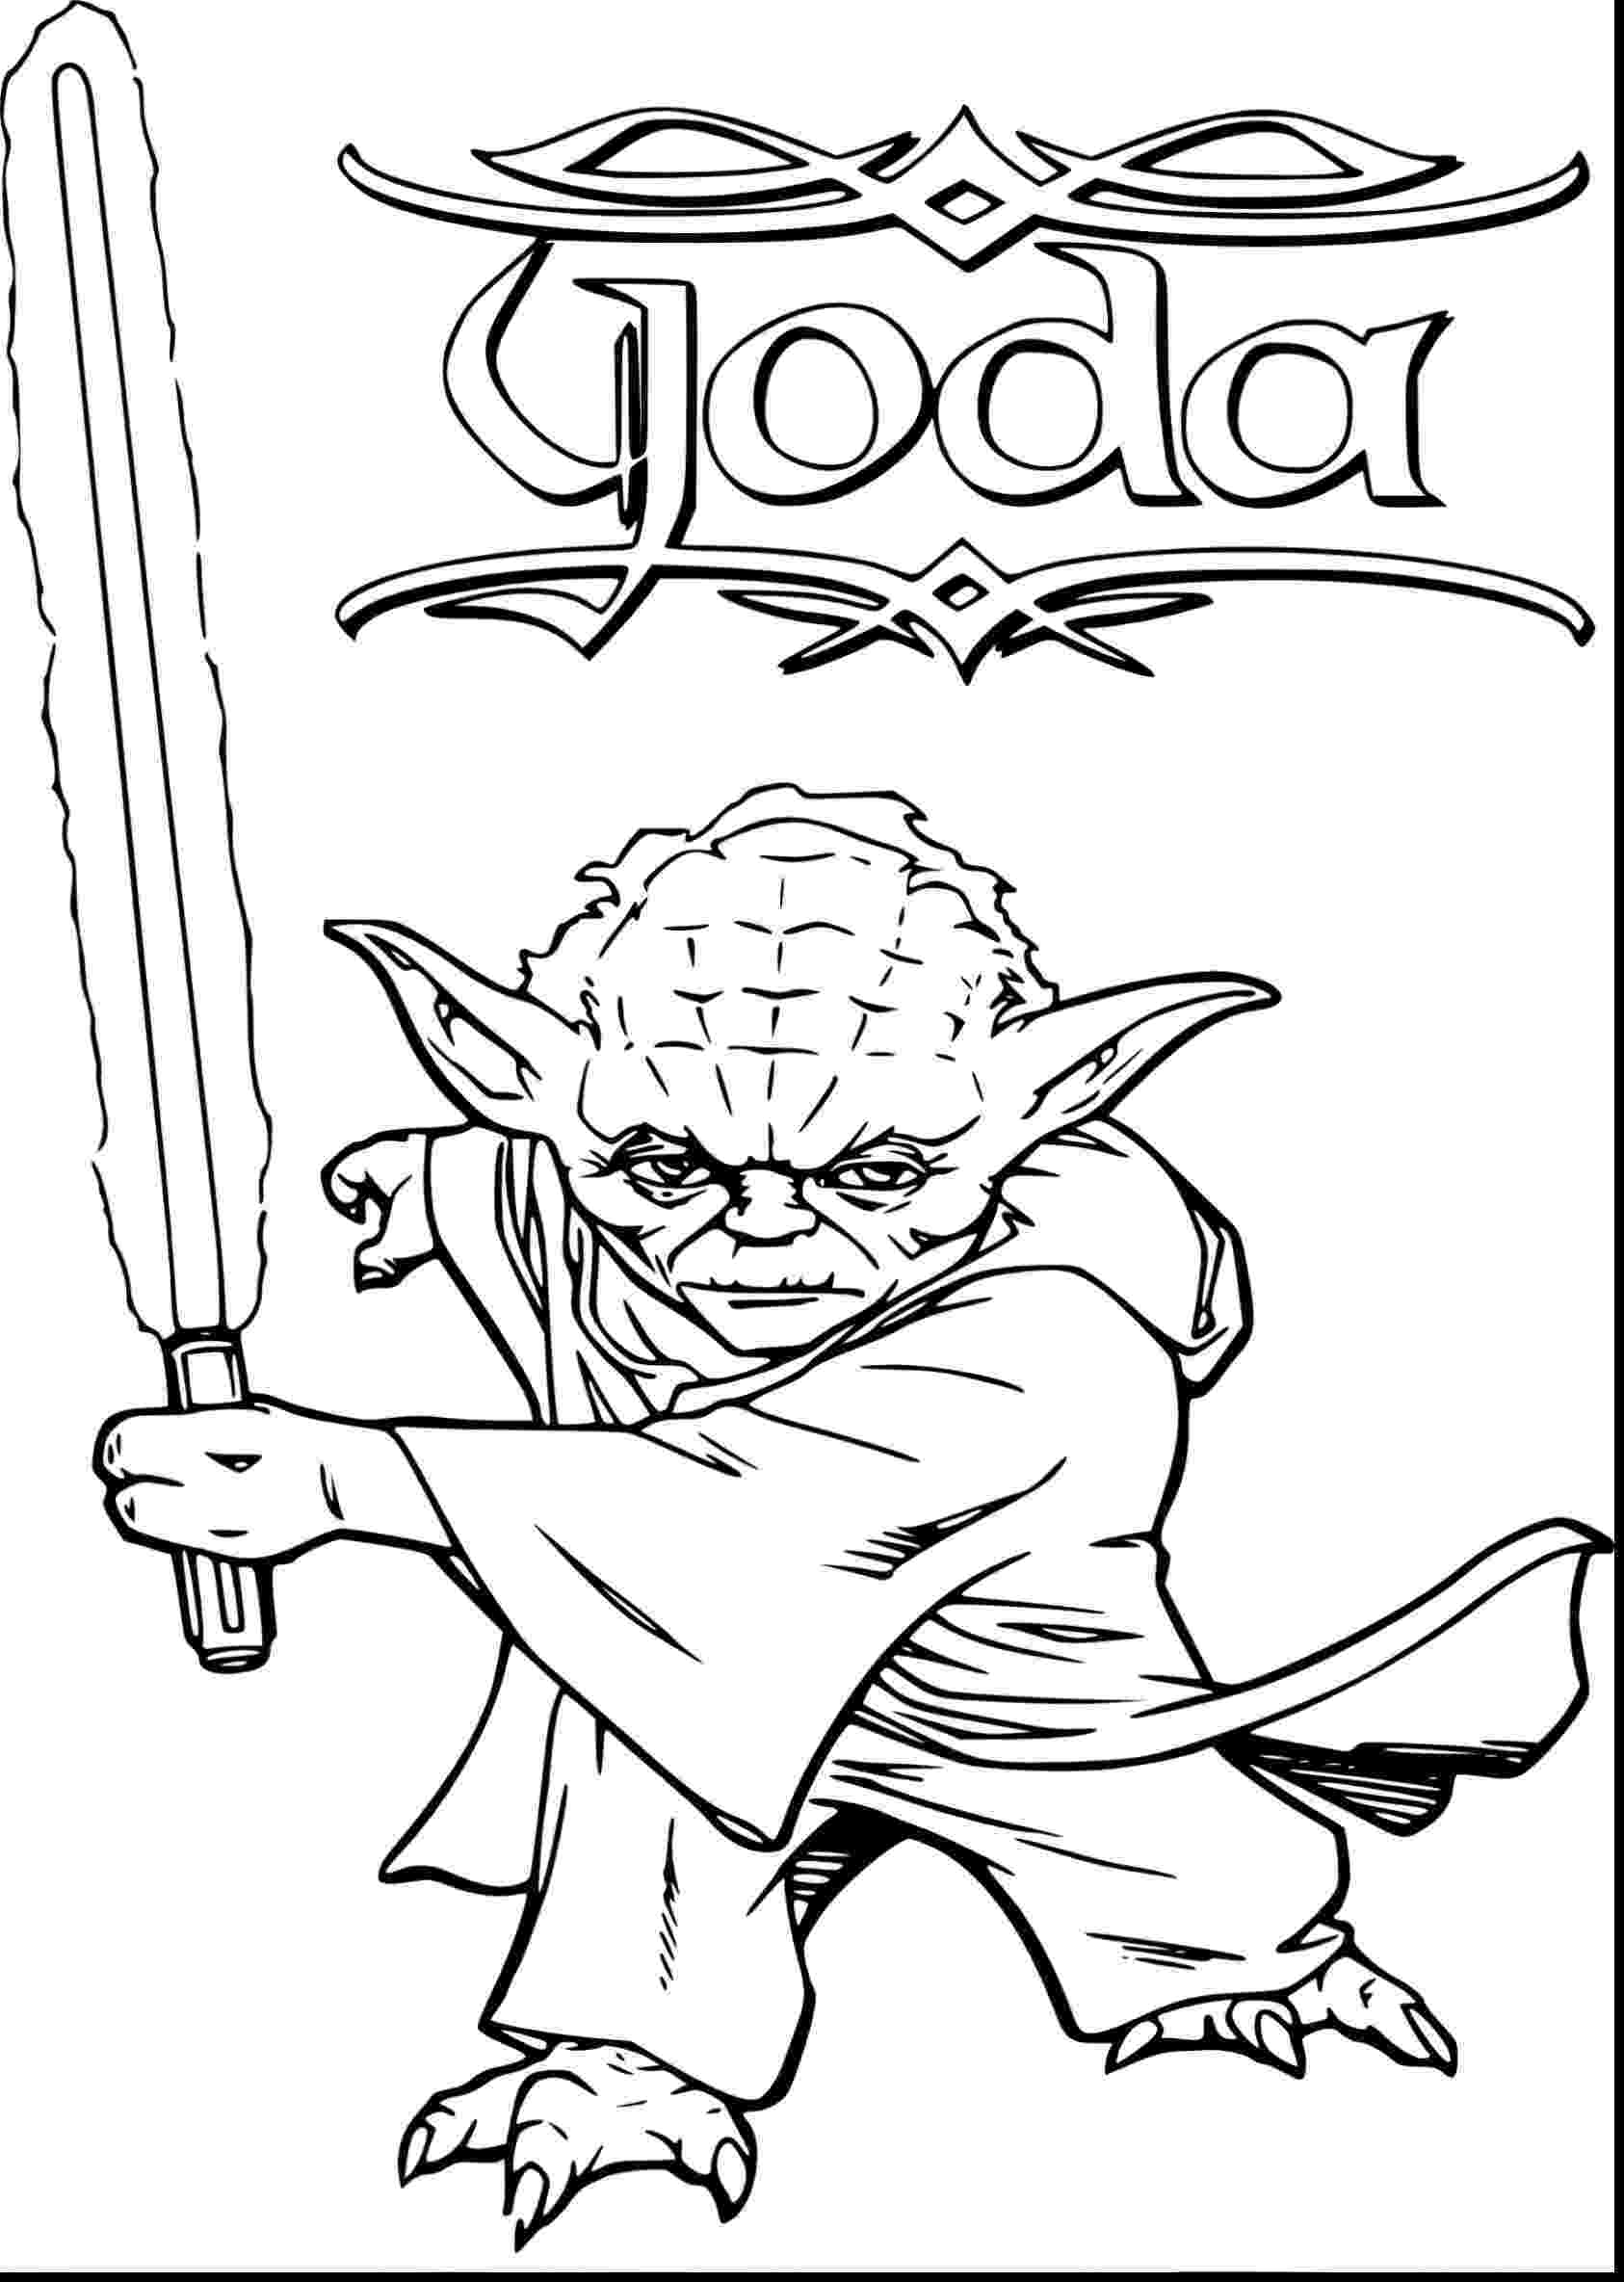 yoda coloring pages printable joda 03 gratis malvorlage in science fiction star wars pages printable yoda coloring